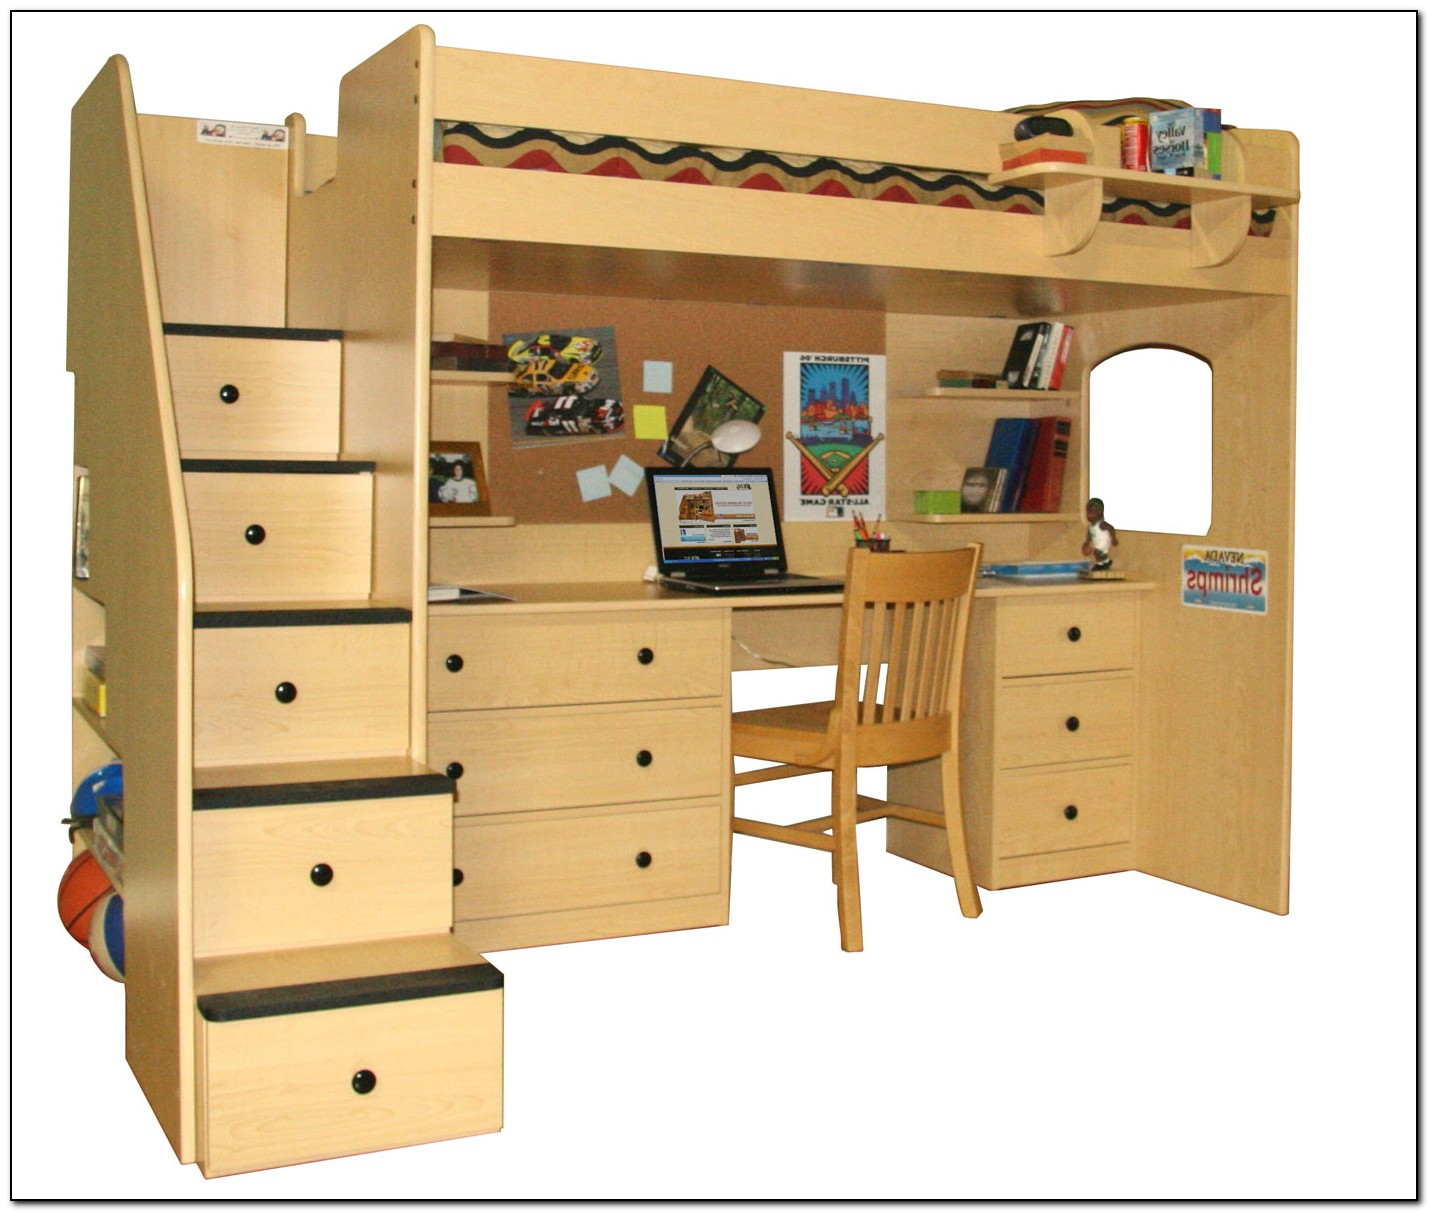 charming loft beds for teenagers in moccasin color with desk and drawers plus stair for teenagers bedroom furniture ideas